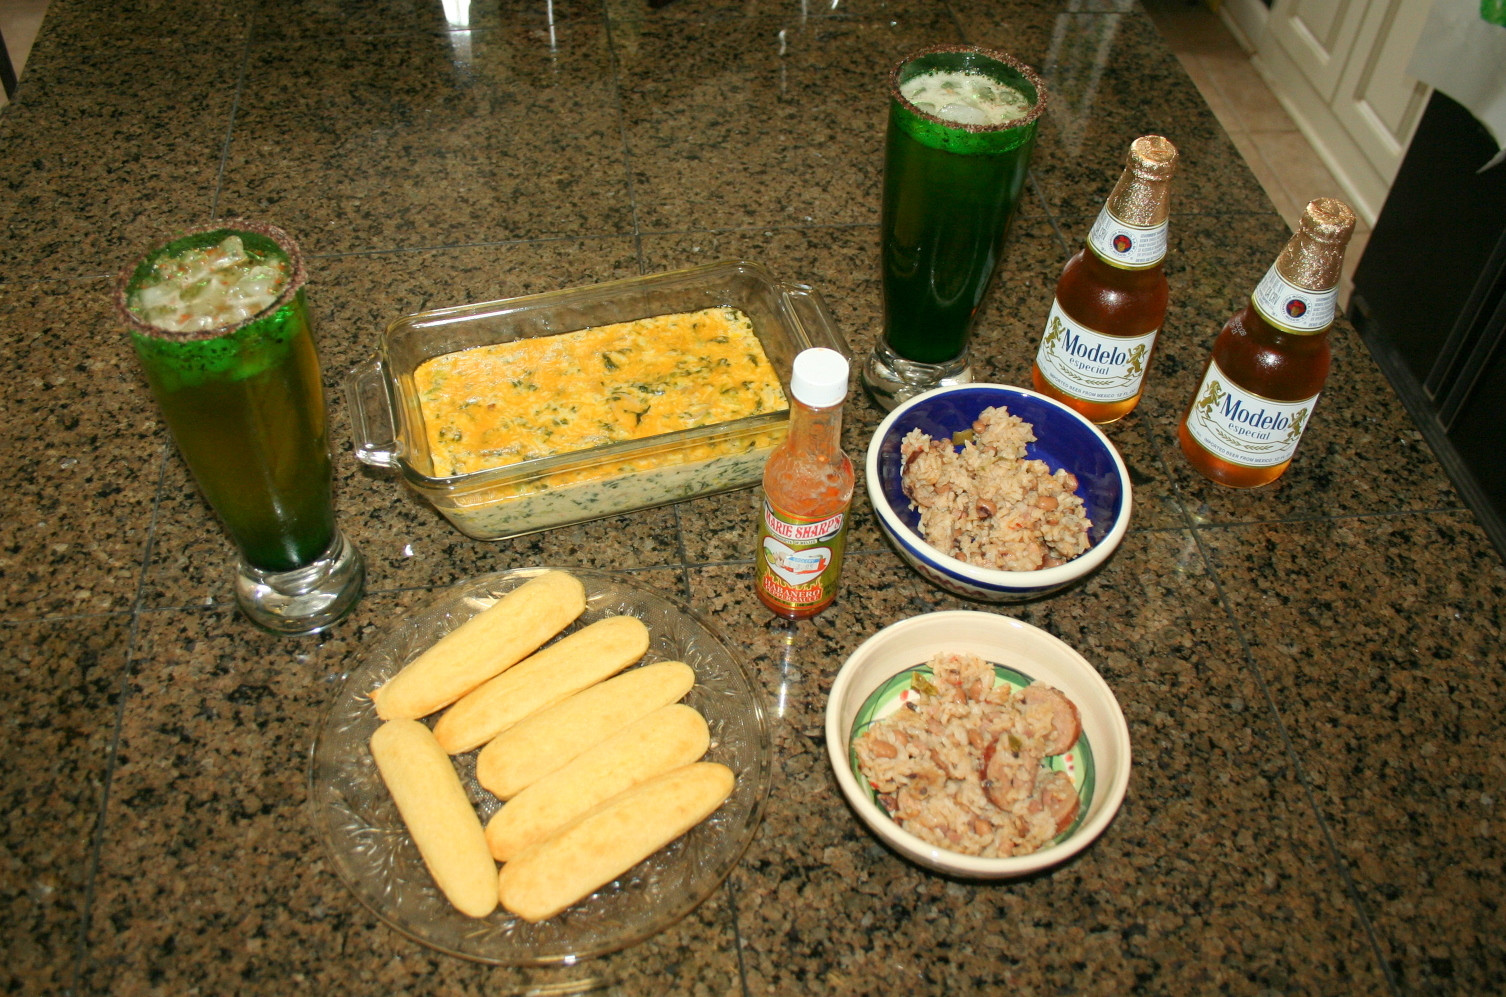 New Year Day Dinner Traditions  Taking Belize New Year s Day Food Traditions and